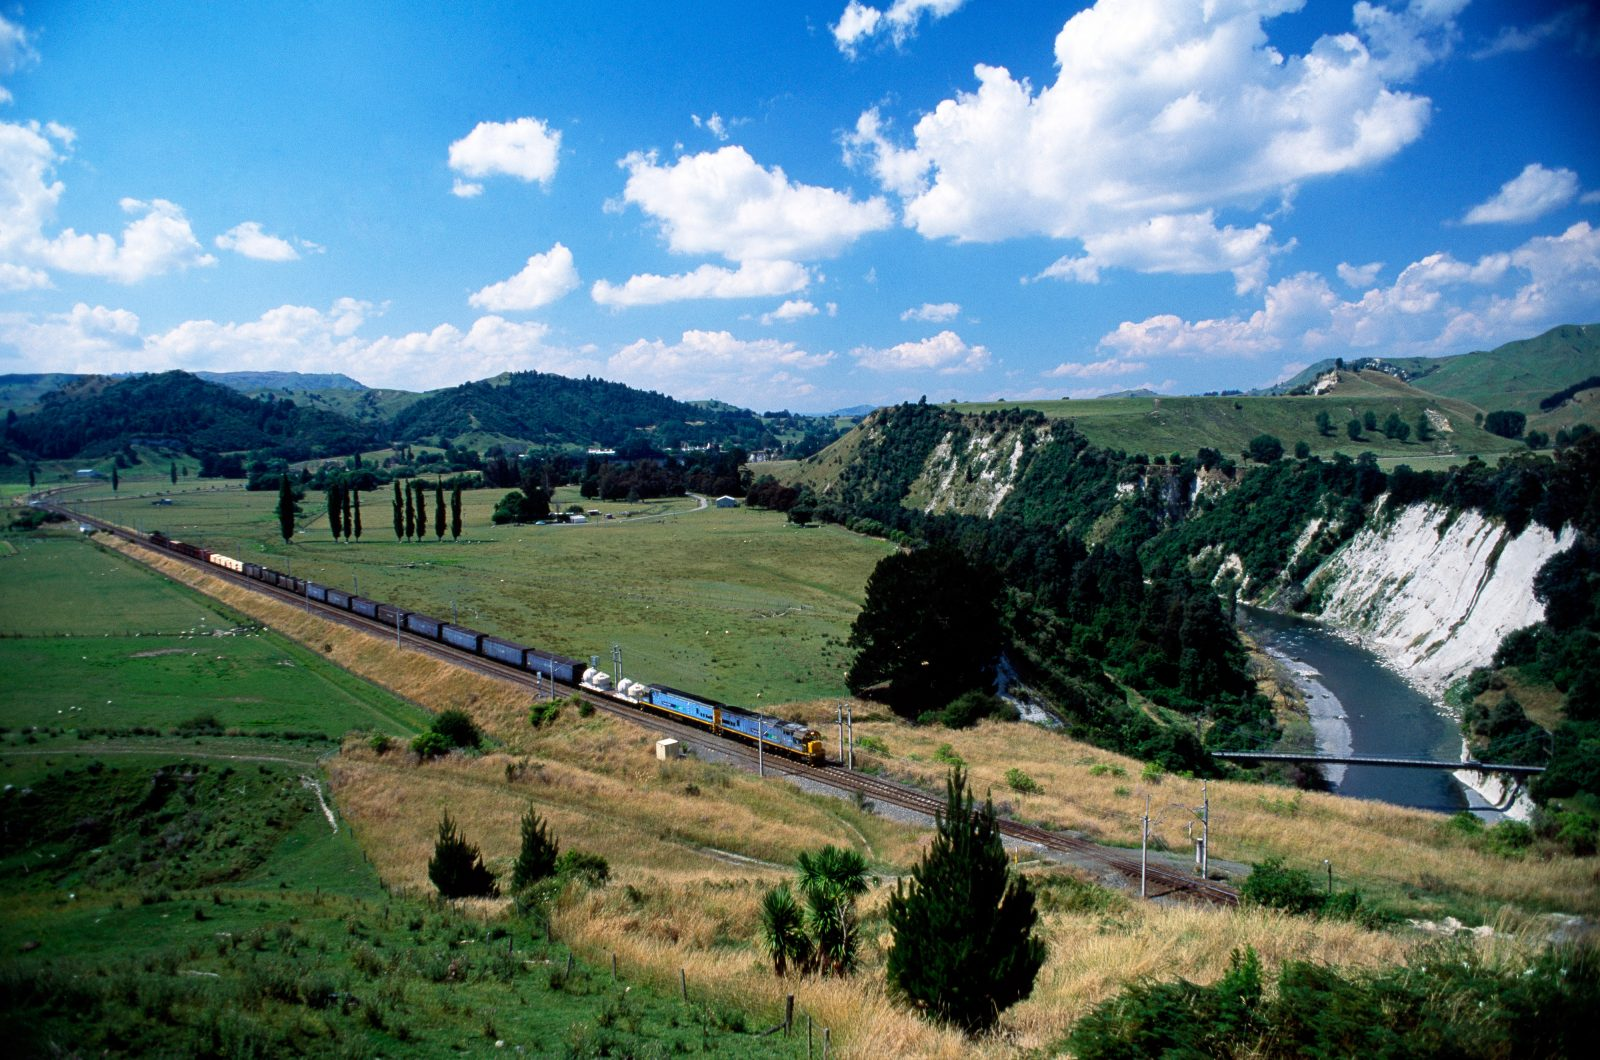 A pair of DX diesel electrics, for the last 20 years the muscle in New Zealand rail's long-haul fleet, ease a freight train across the Rangitikei flats south of Mangaweka.